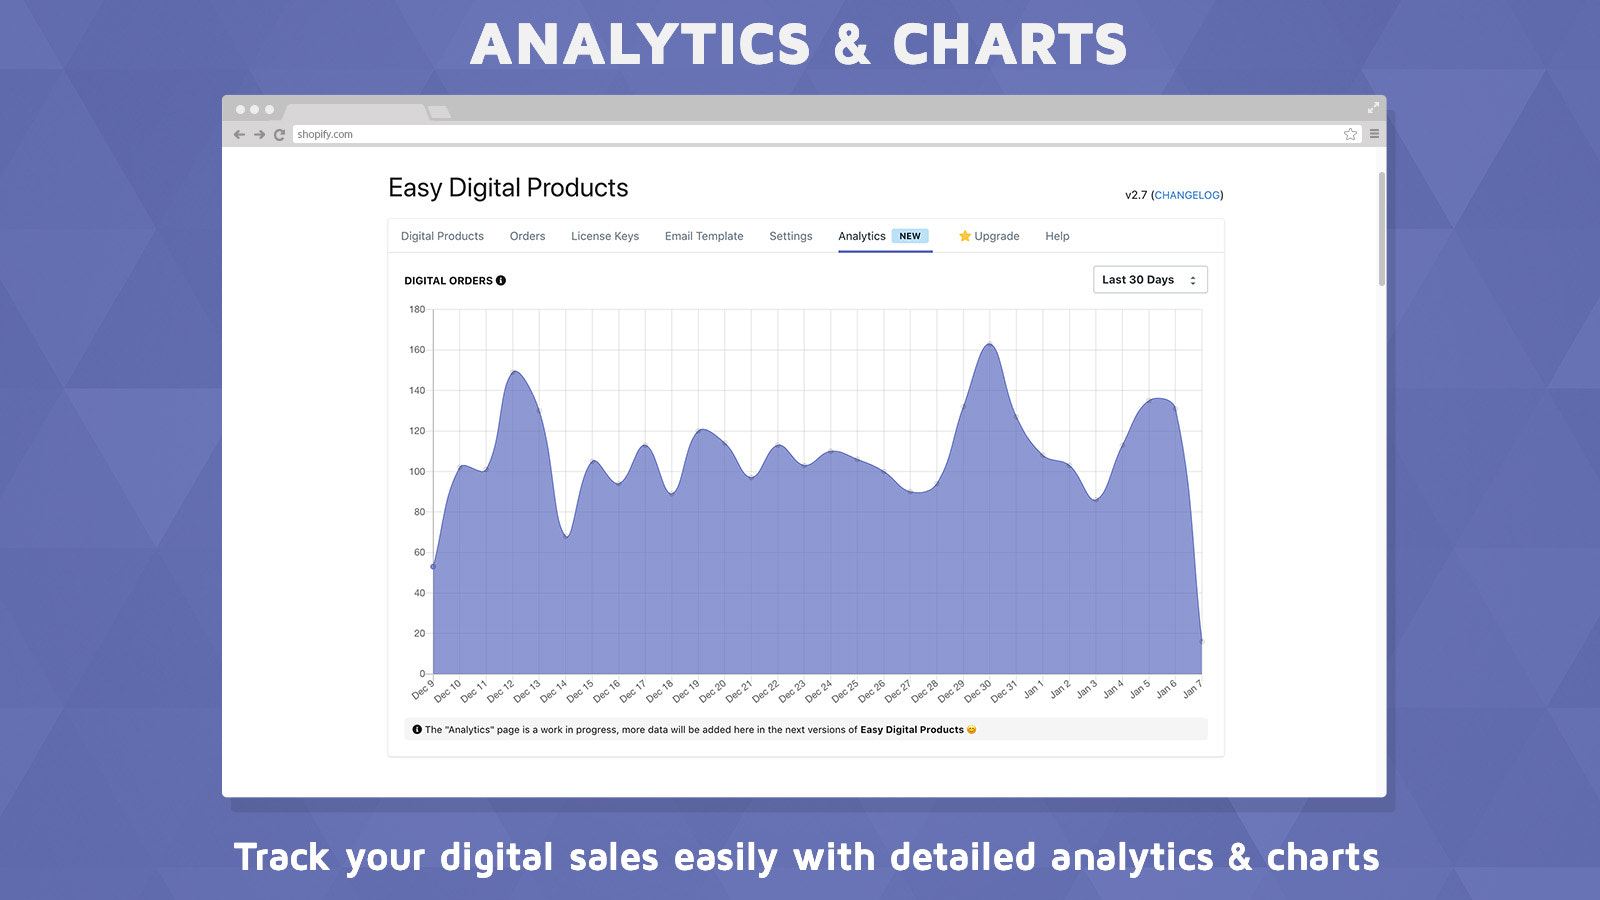 Track your digital orders and get advanced stats